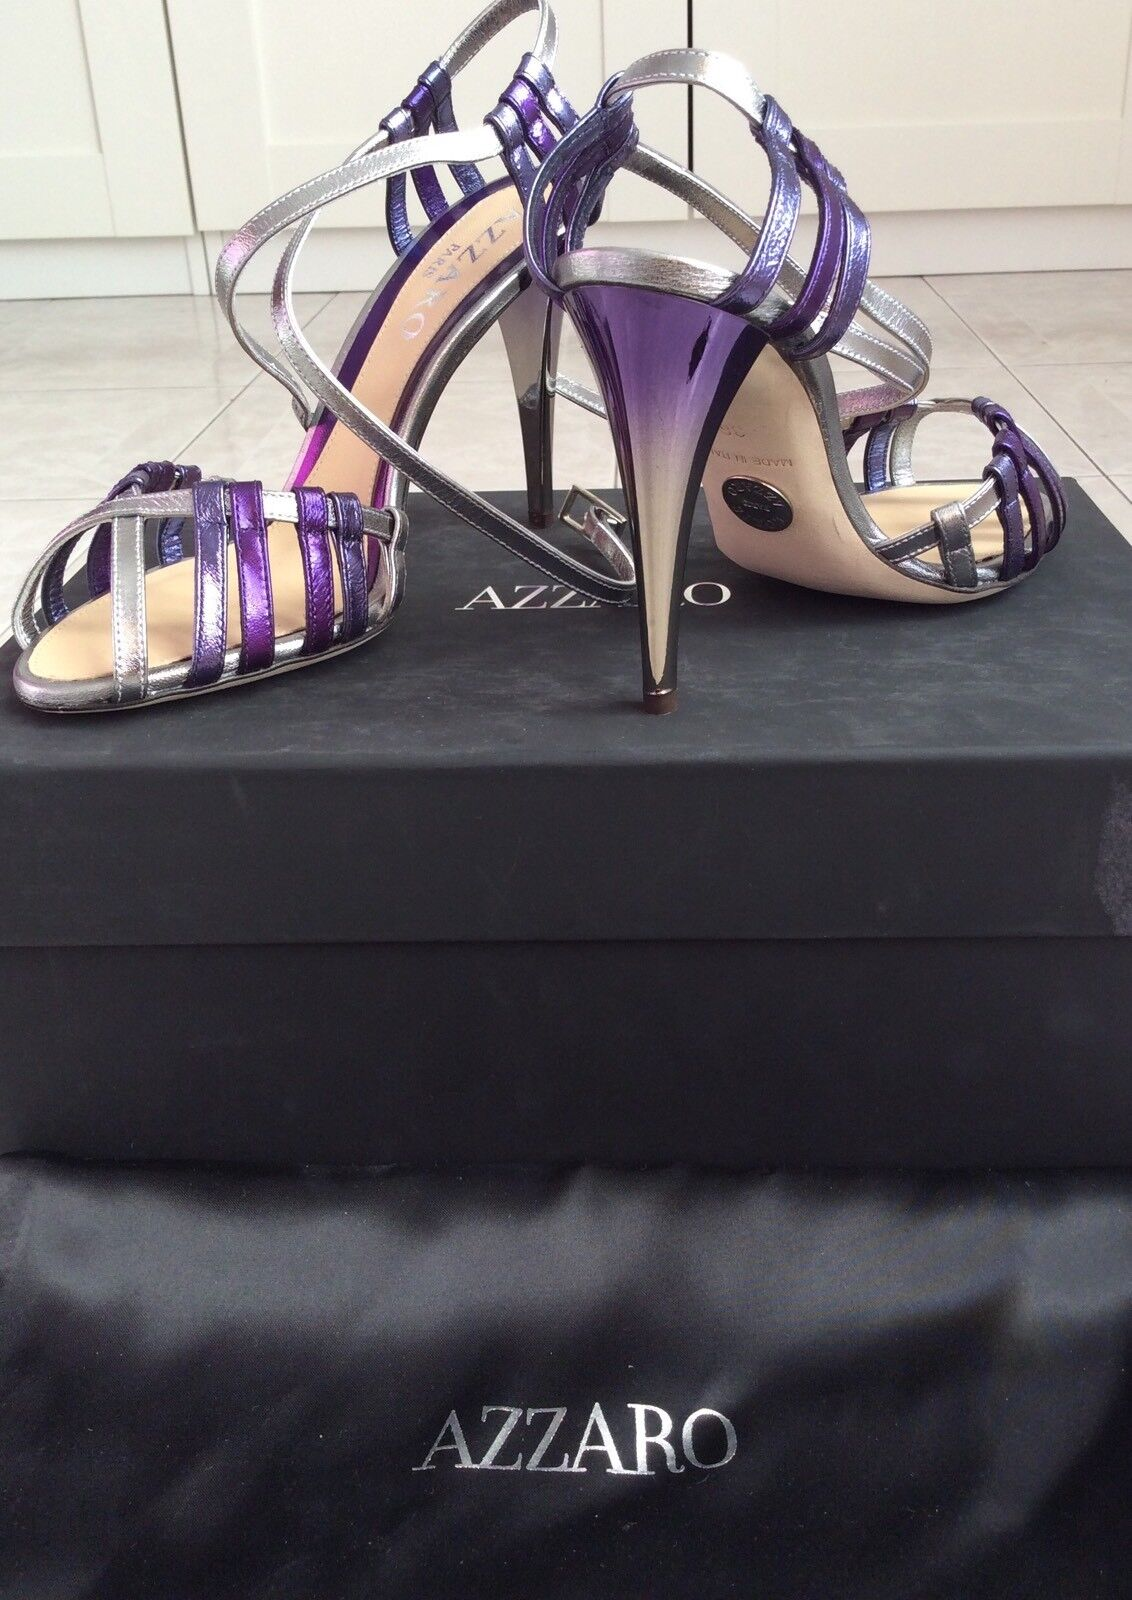 Azzaro Sandals Shoes Silver New! Violet Leather Size 36. New! Silver 1445 27e983